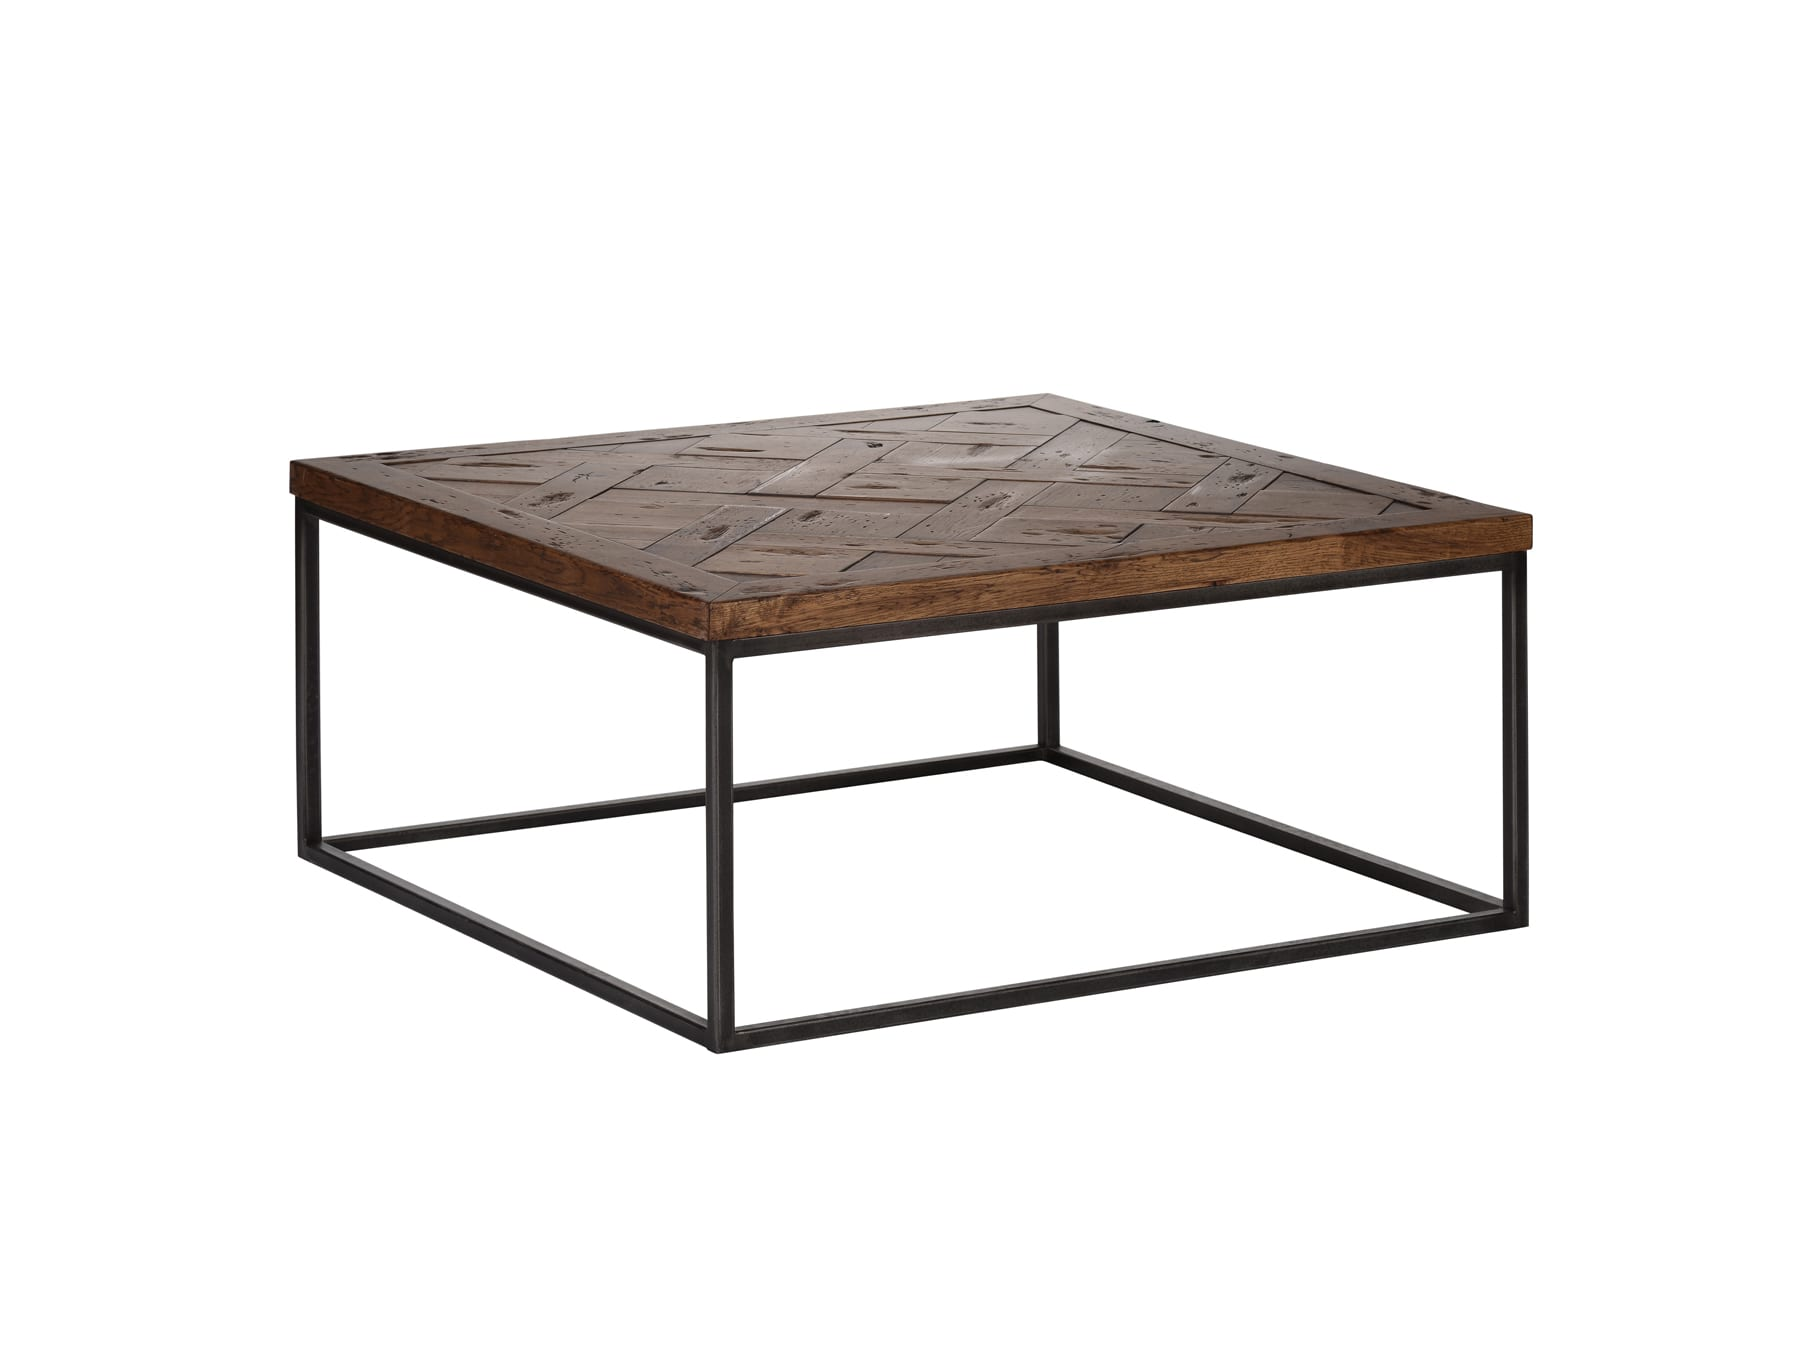 Halo Versailles Coffee Table available at McKenzie & Willis